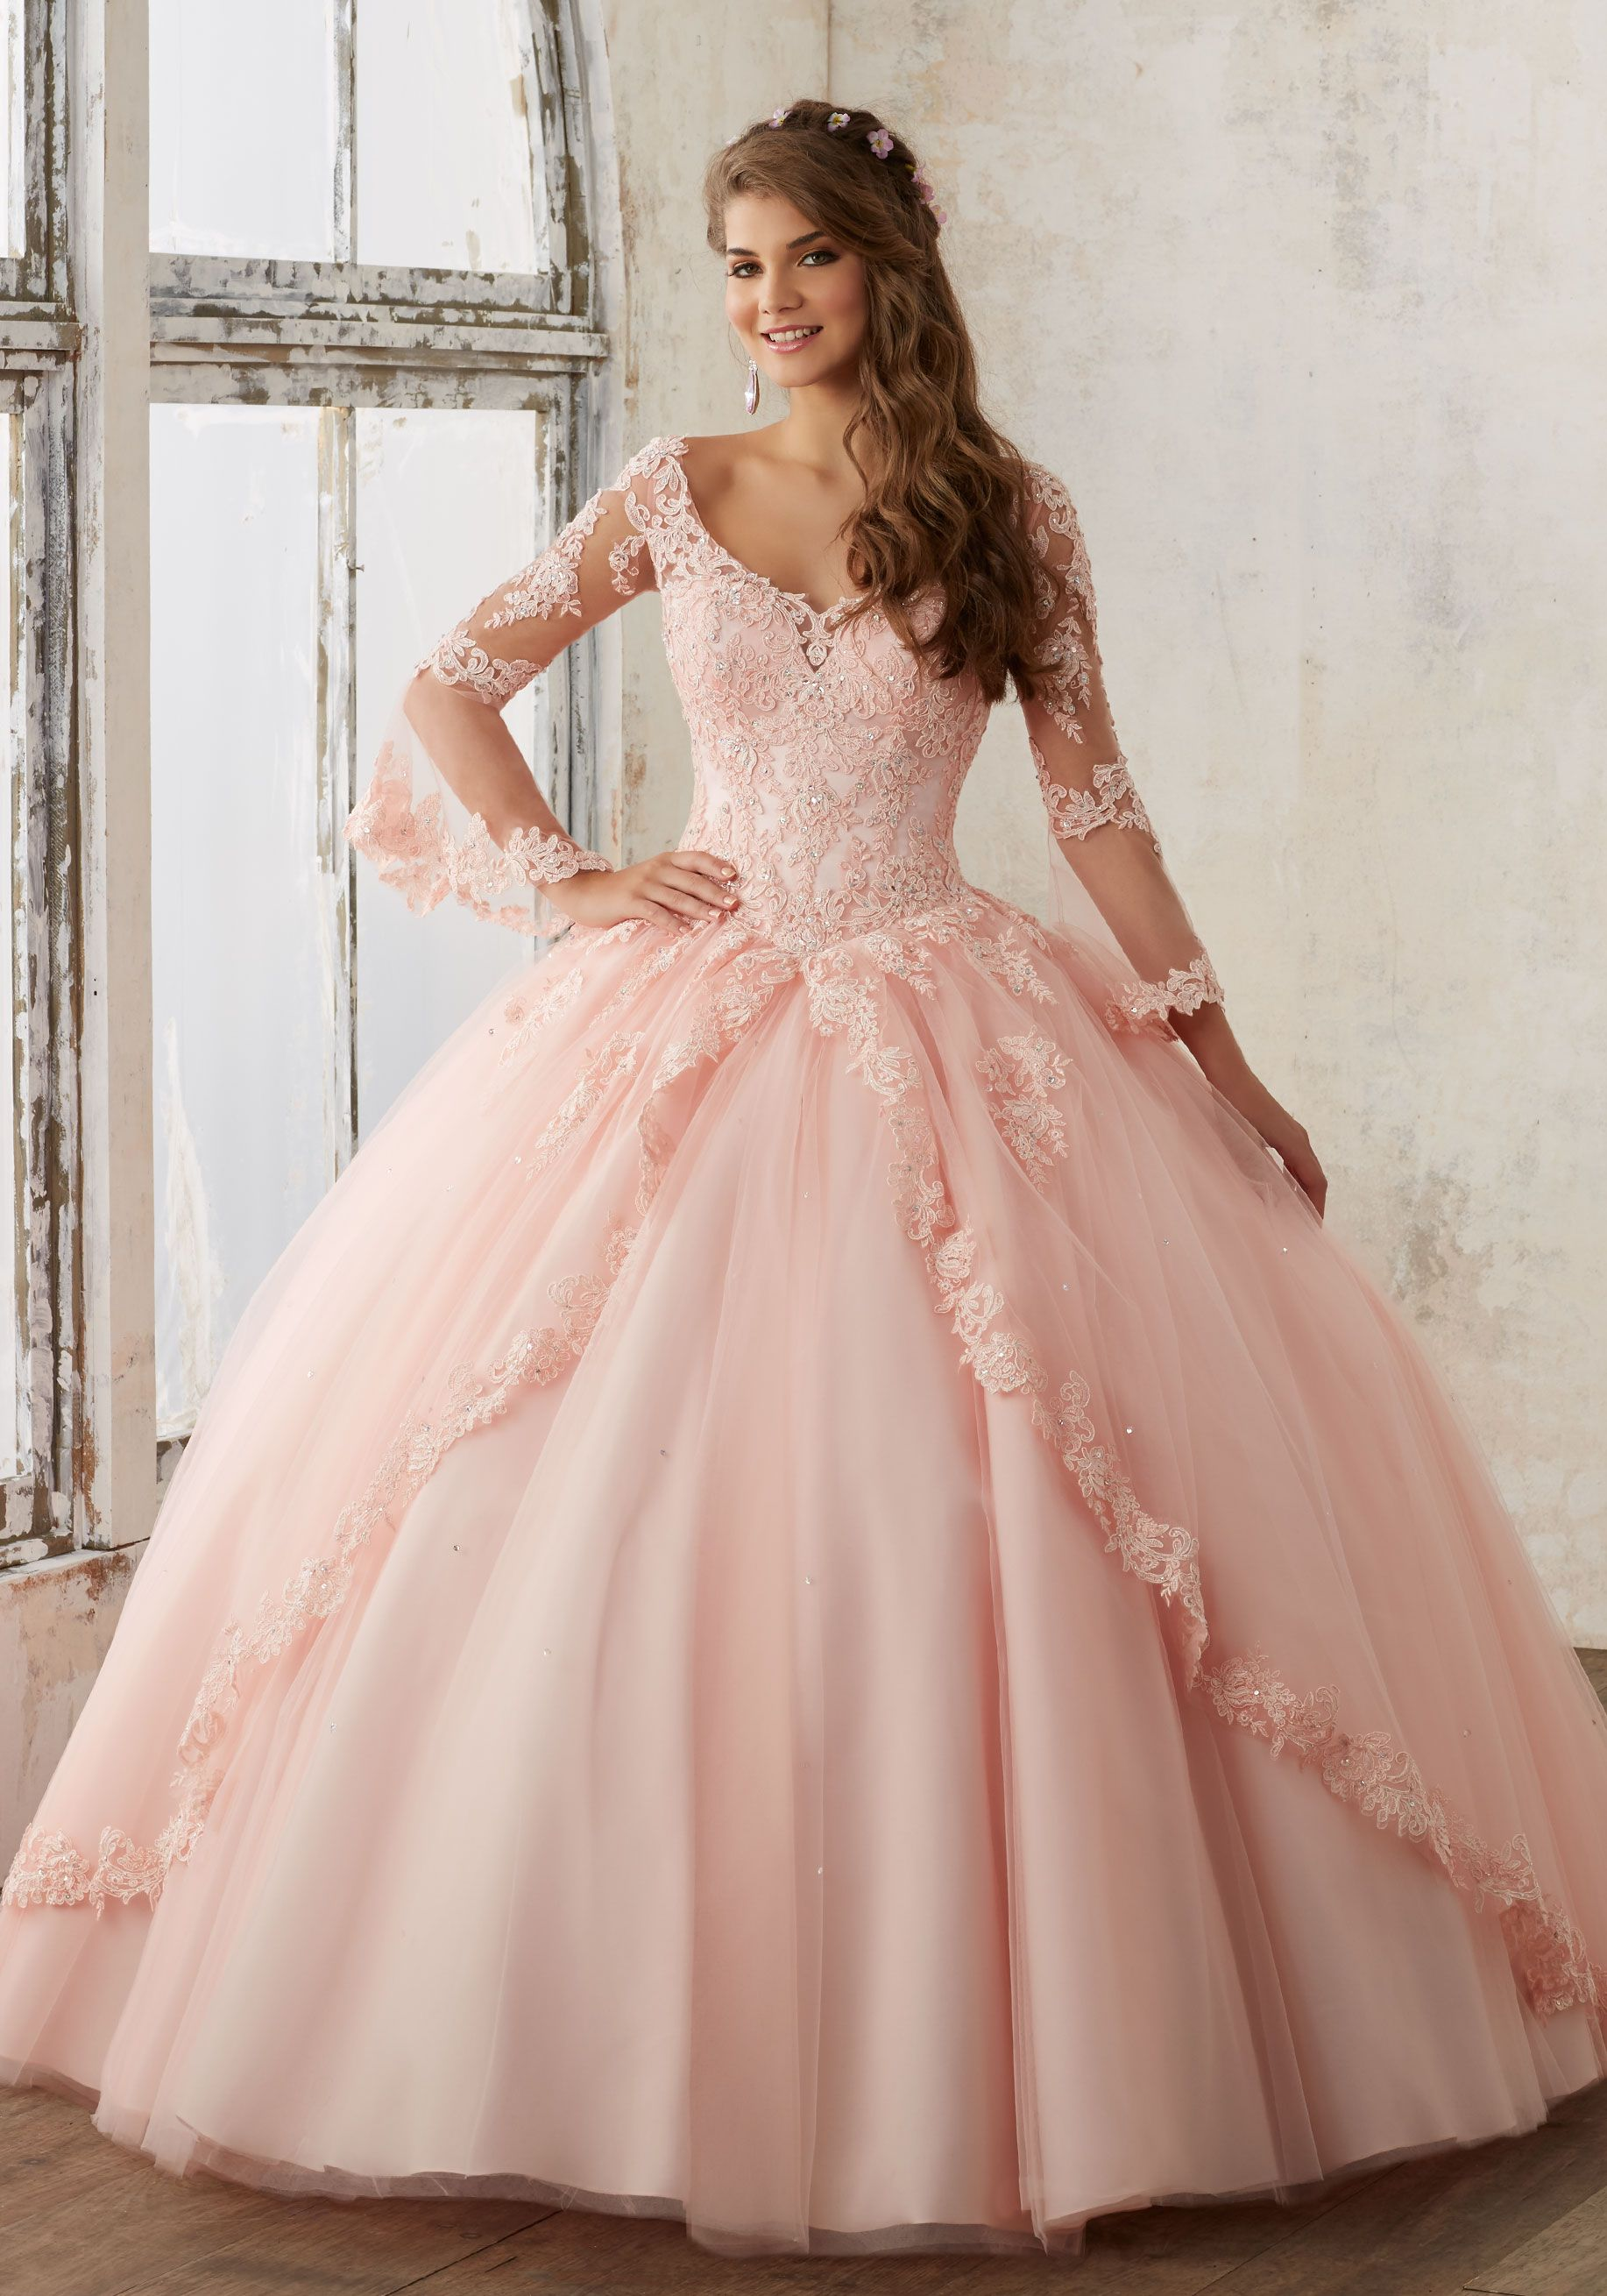 50fb6d73c31 Beaded Lace on a Princess Tulle Quinceañera Ball Gown